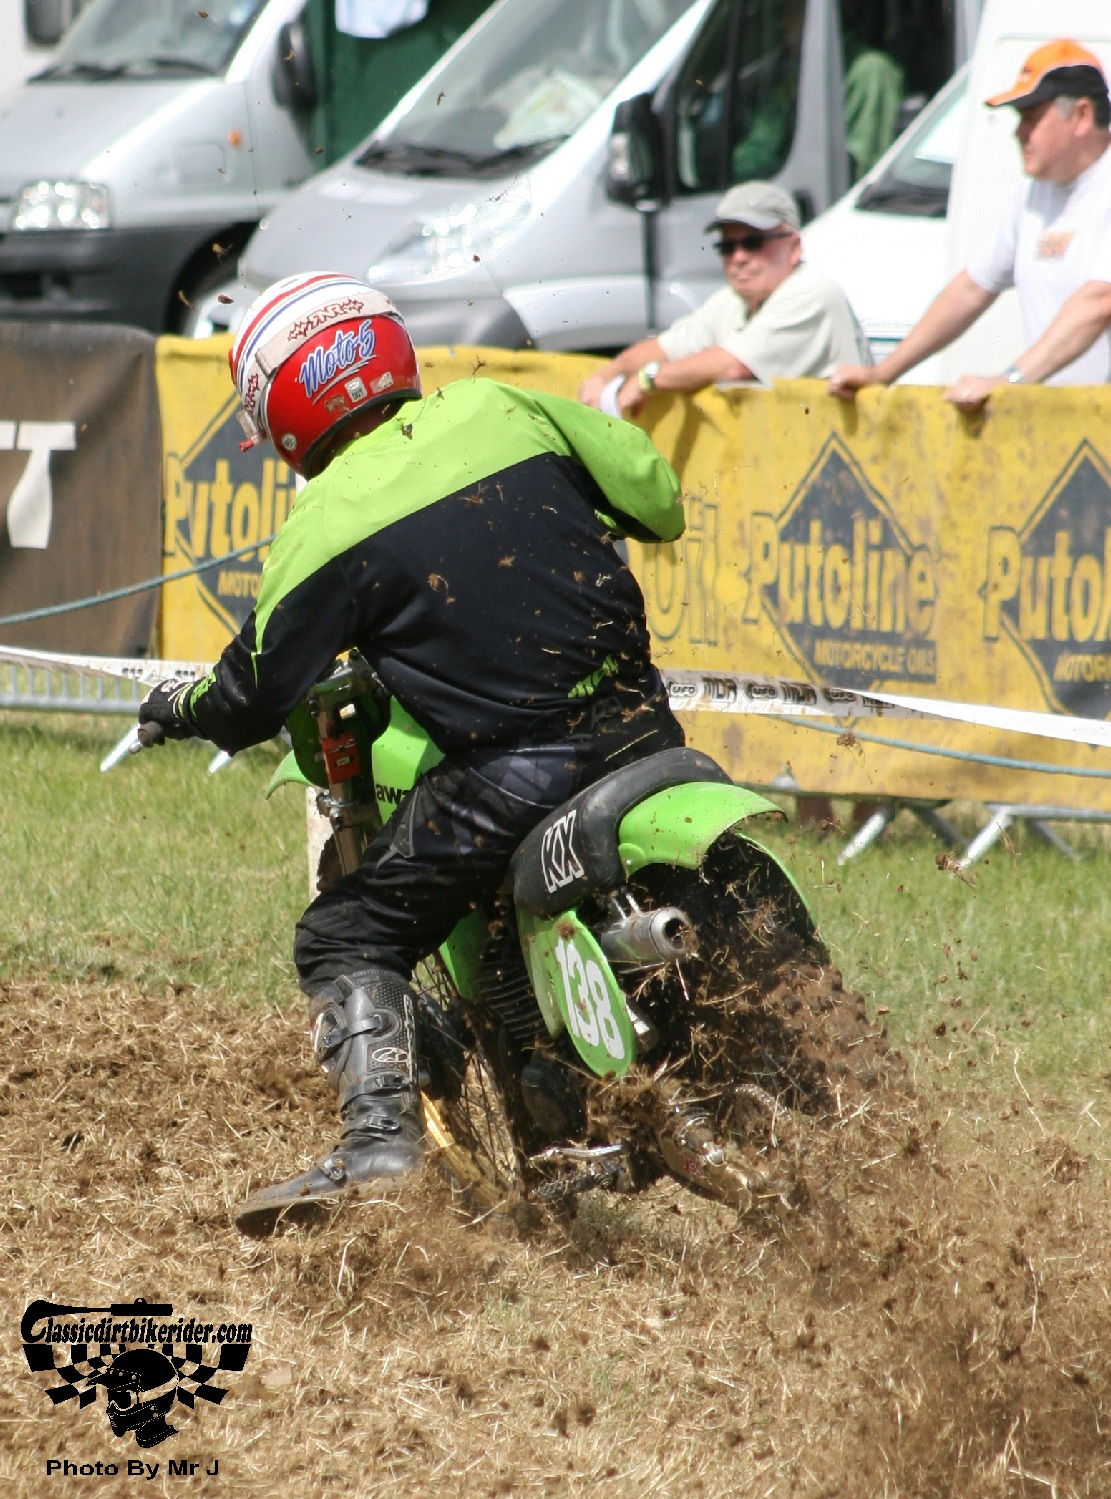 king of the castle 2015 photos Farleigh Castle twinshock motocross classicdirtbikerider.com 93